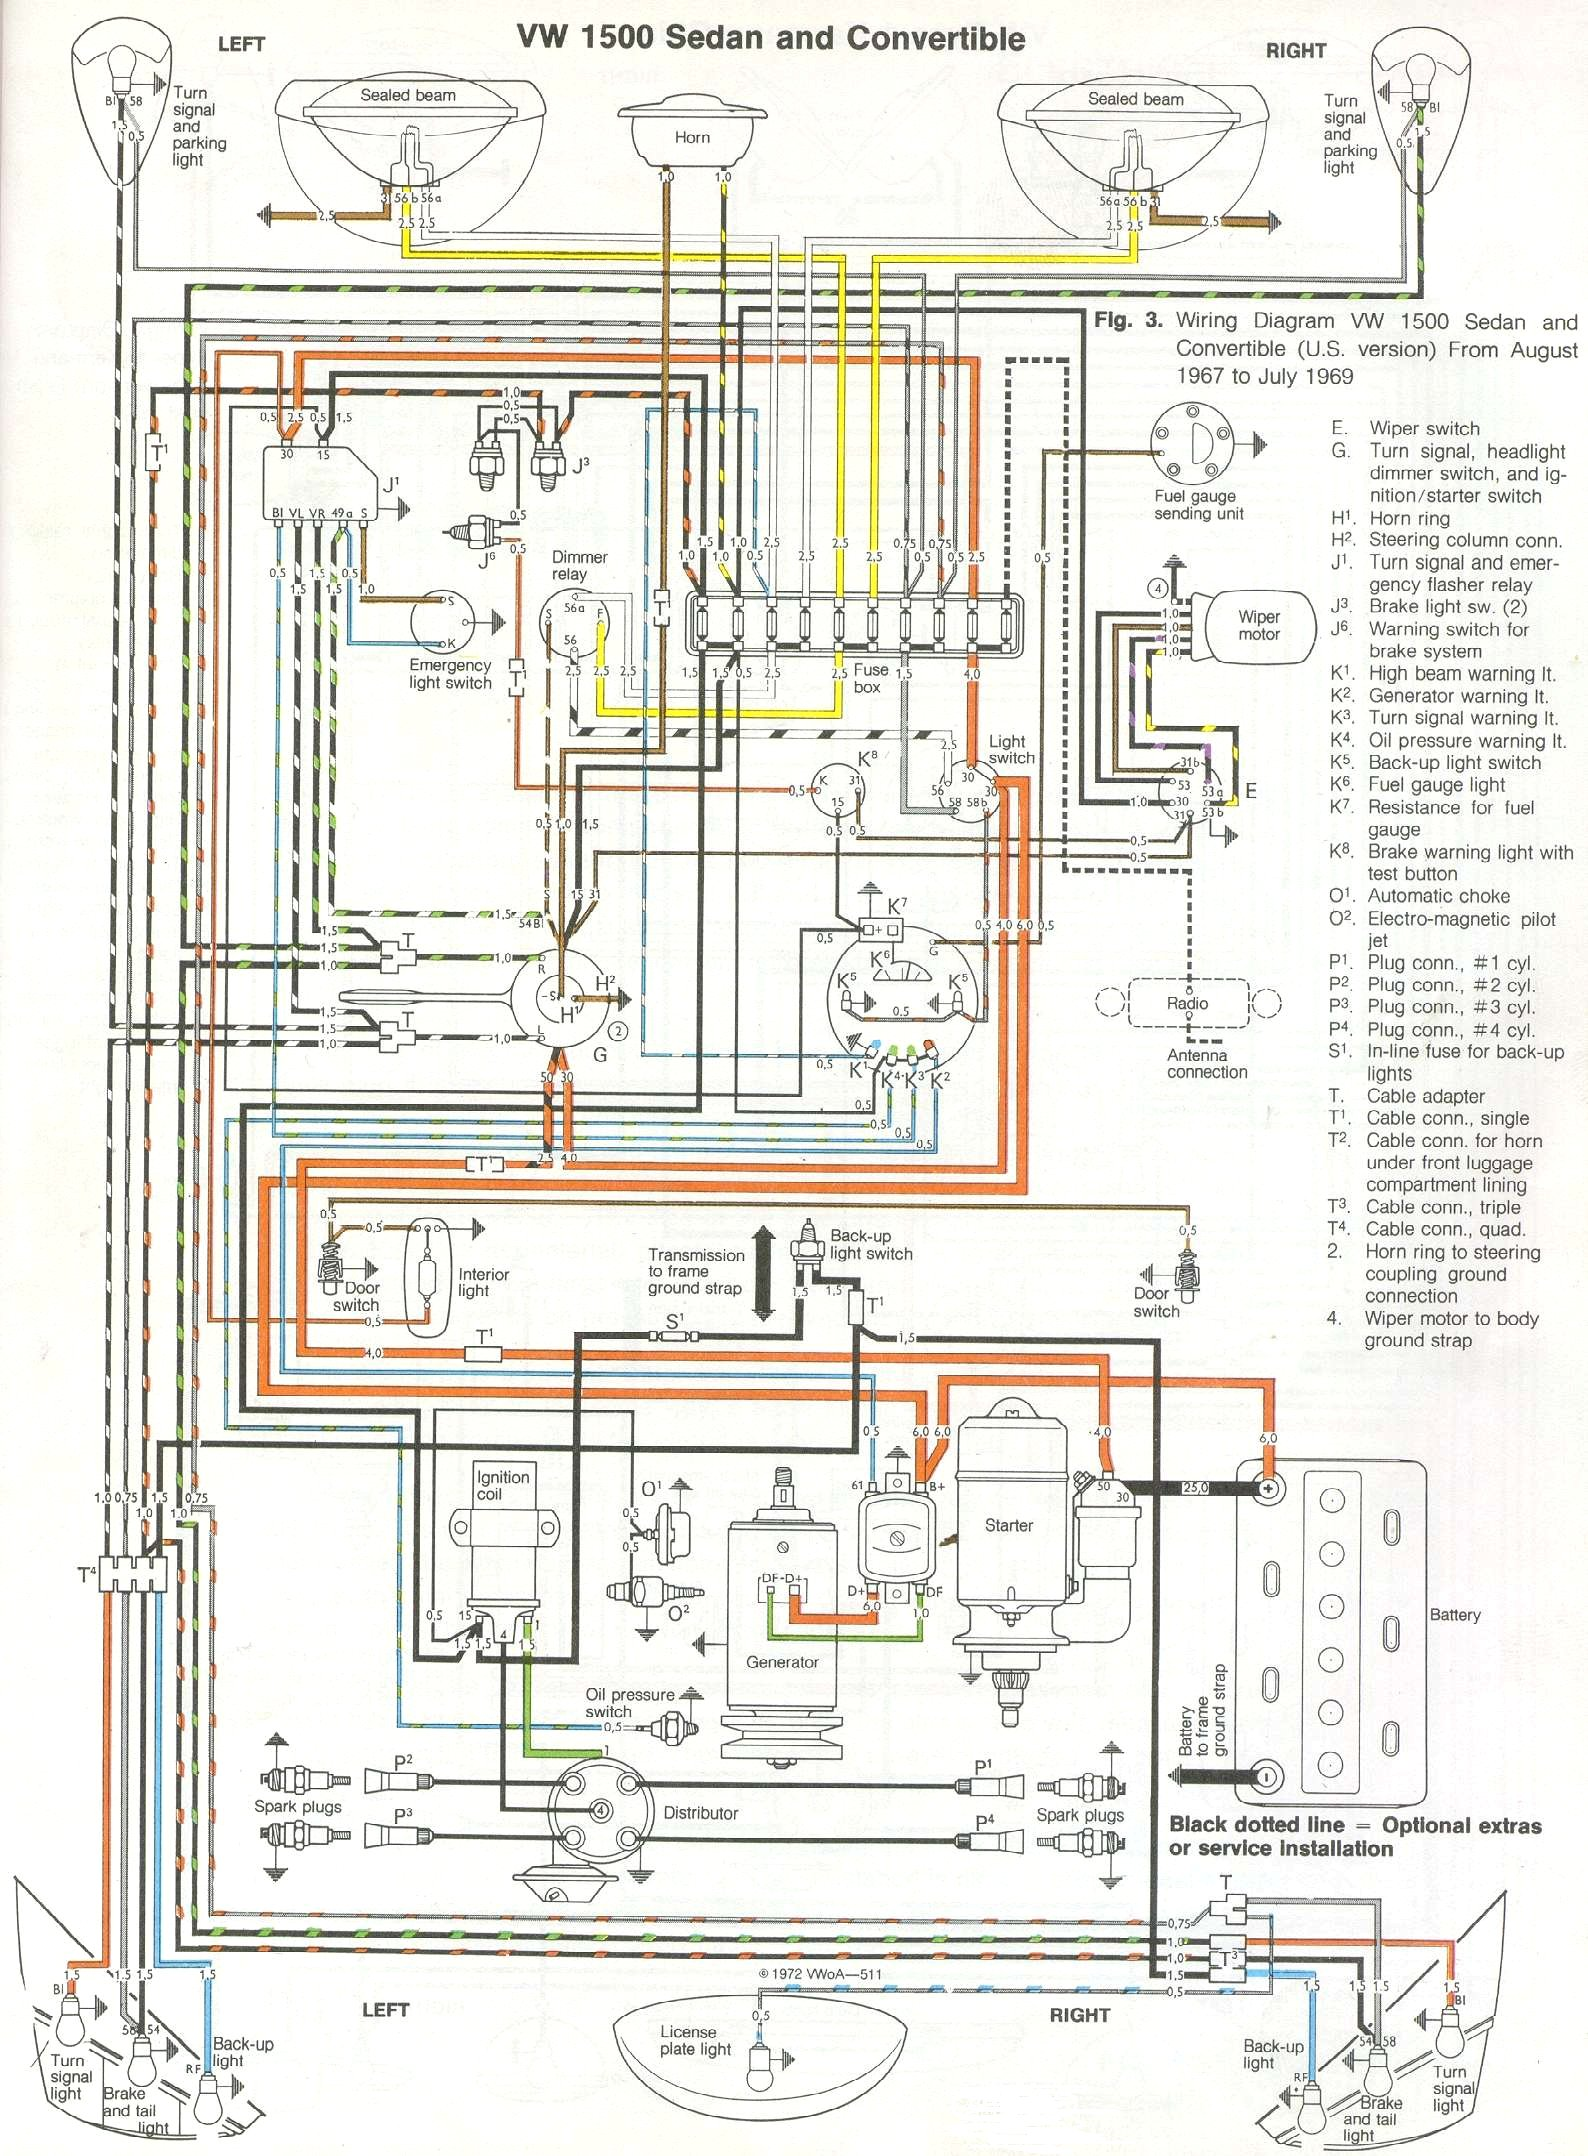 bug_6869 vw wiring harness diagram cj7 wiring harness diagram \u2022 wiring 1971 vw bus wiring diagram at mifinder.co